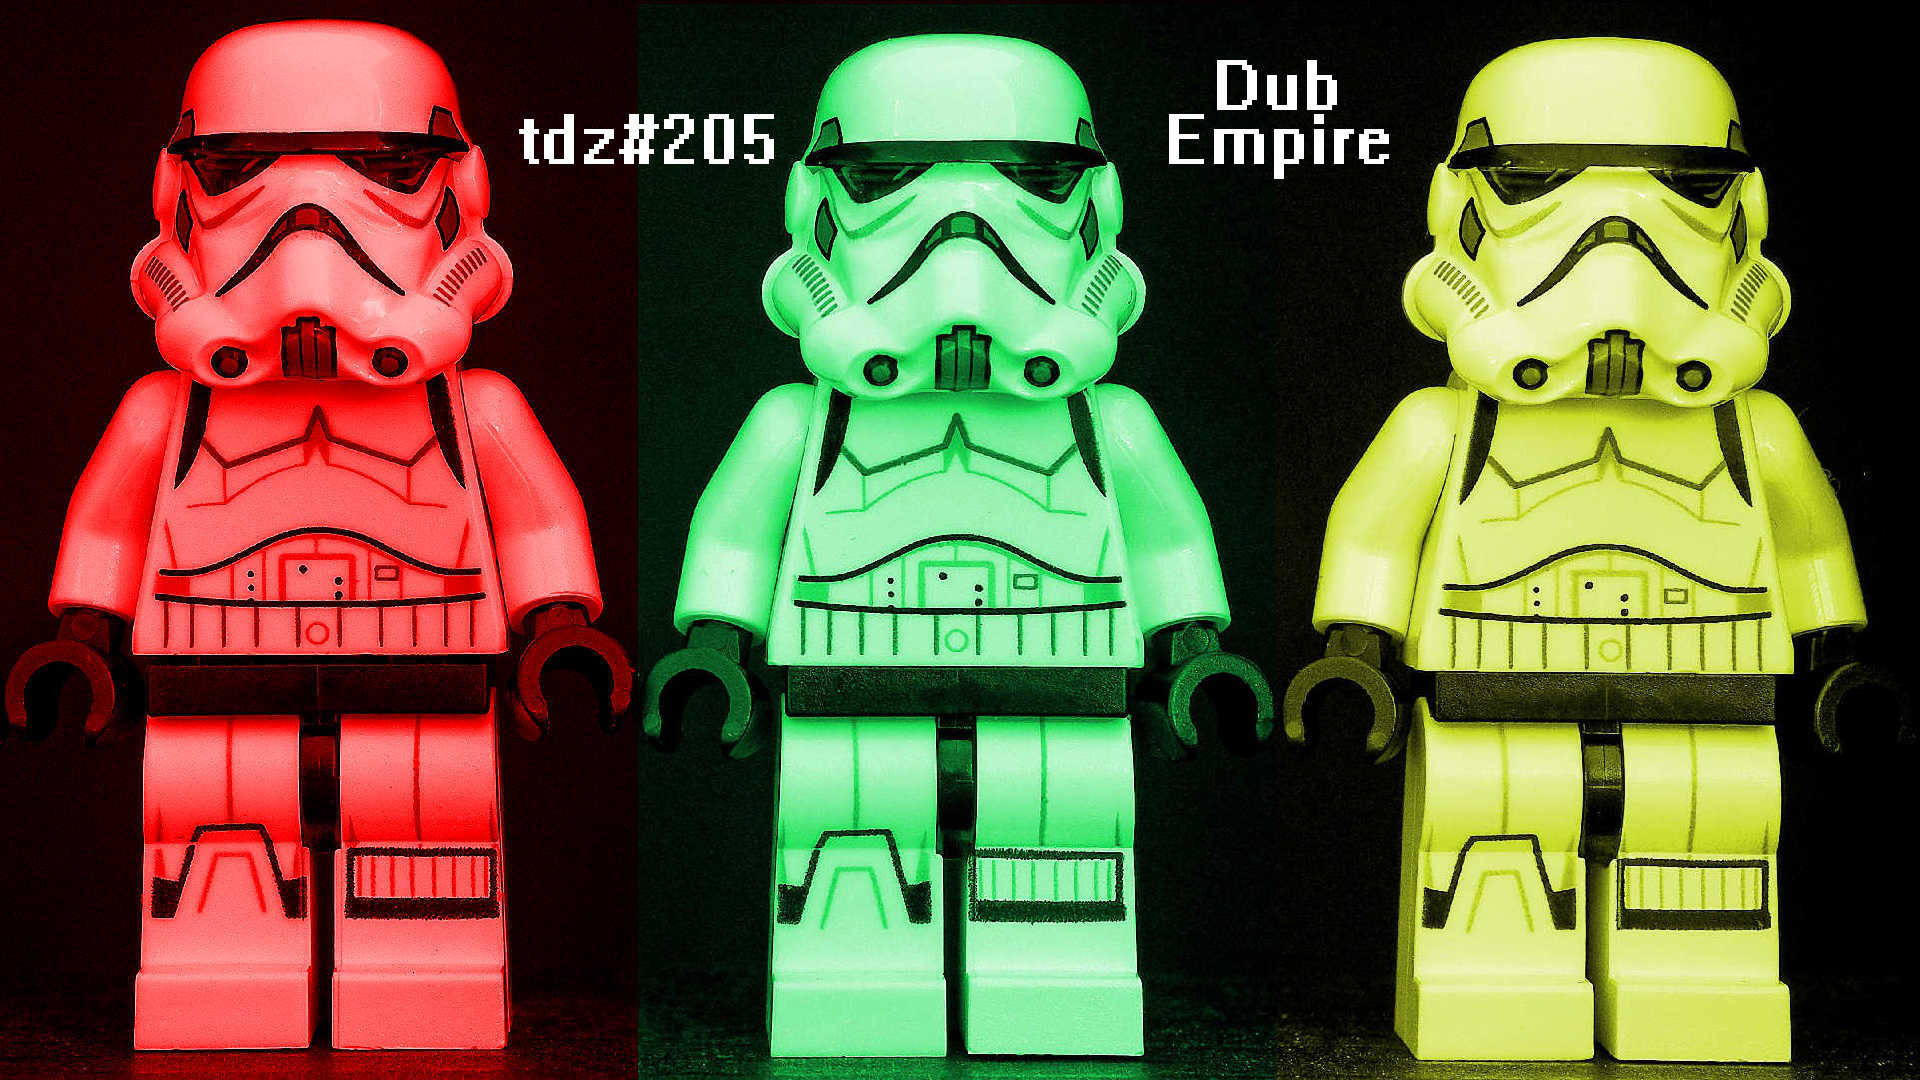 TDZ#205... Empire Dub.....